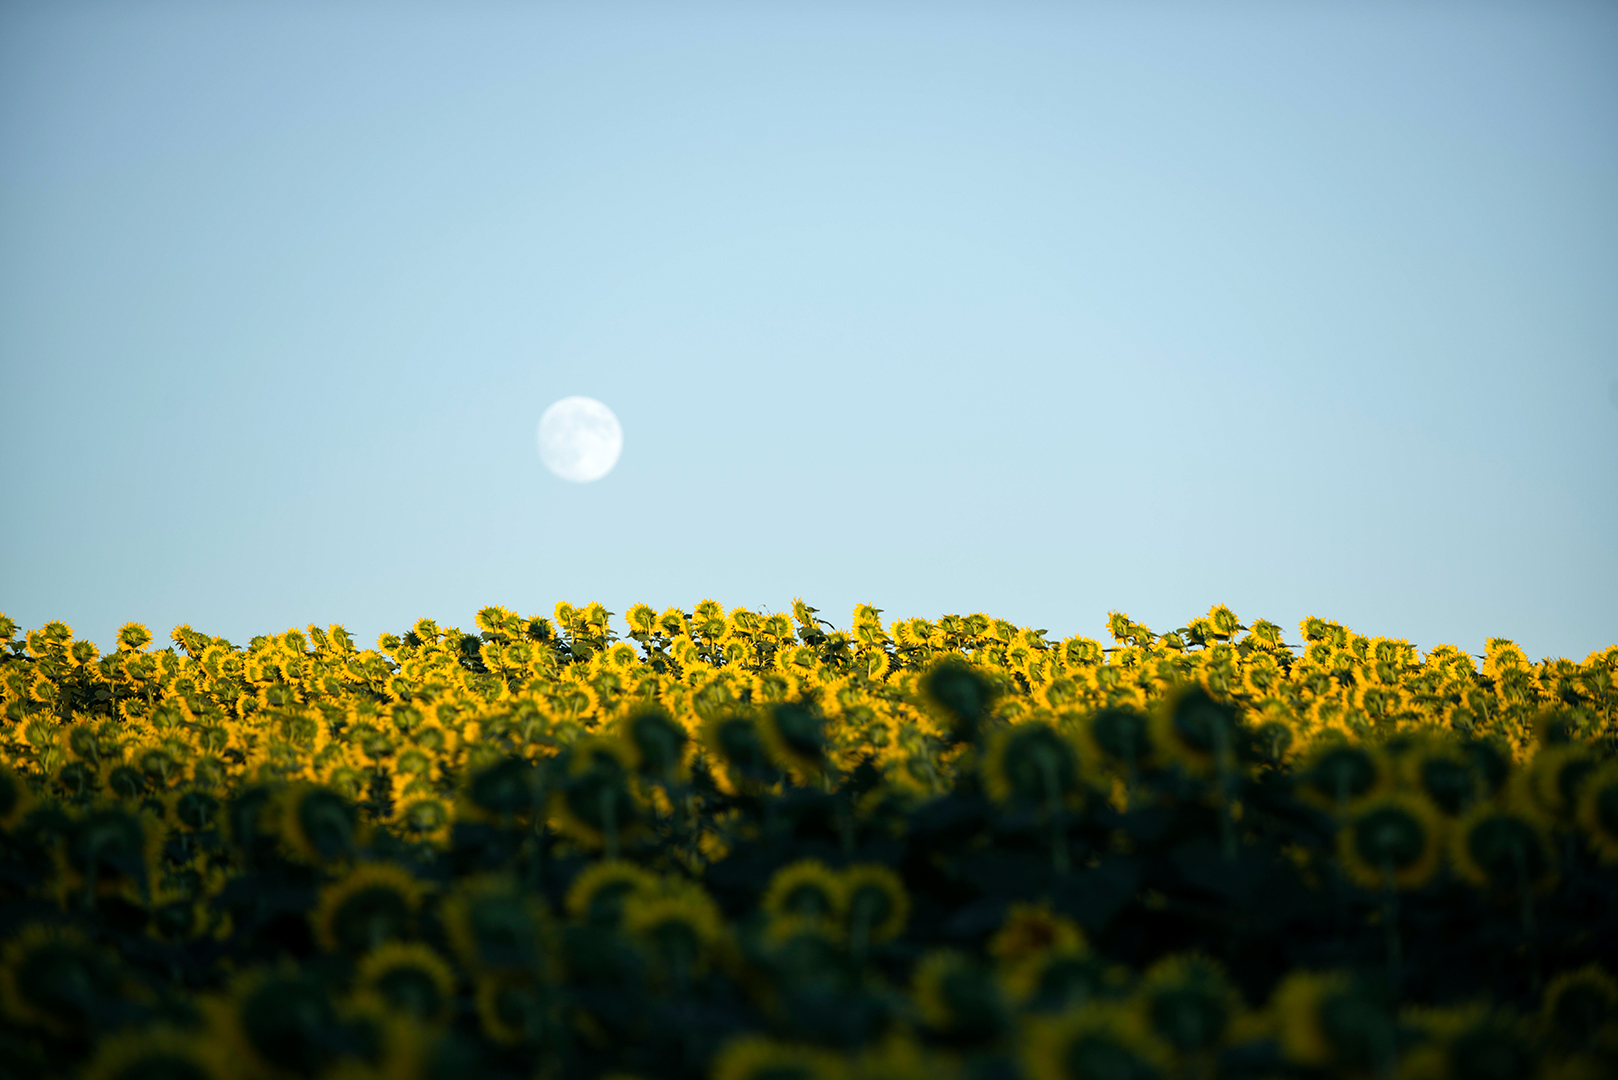 faint moon over field of sunflower plants